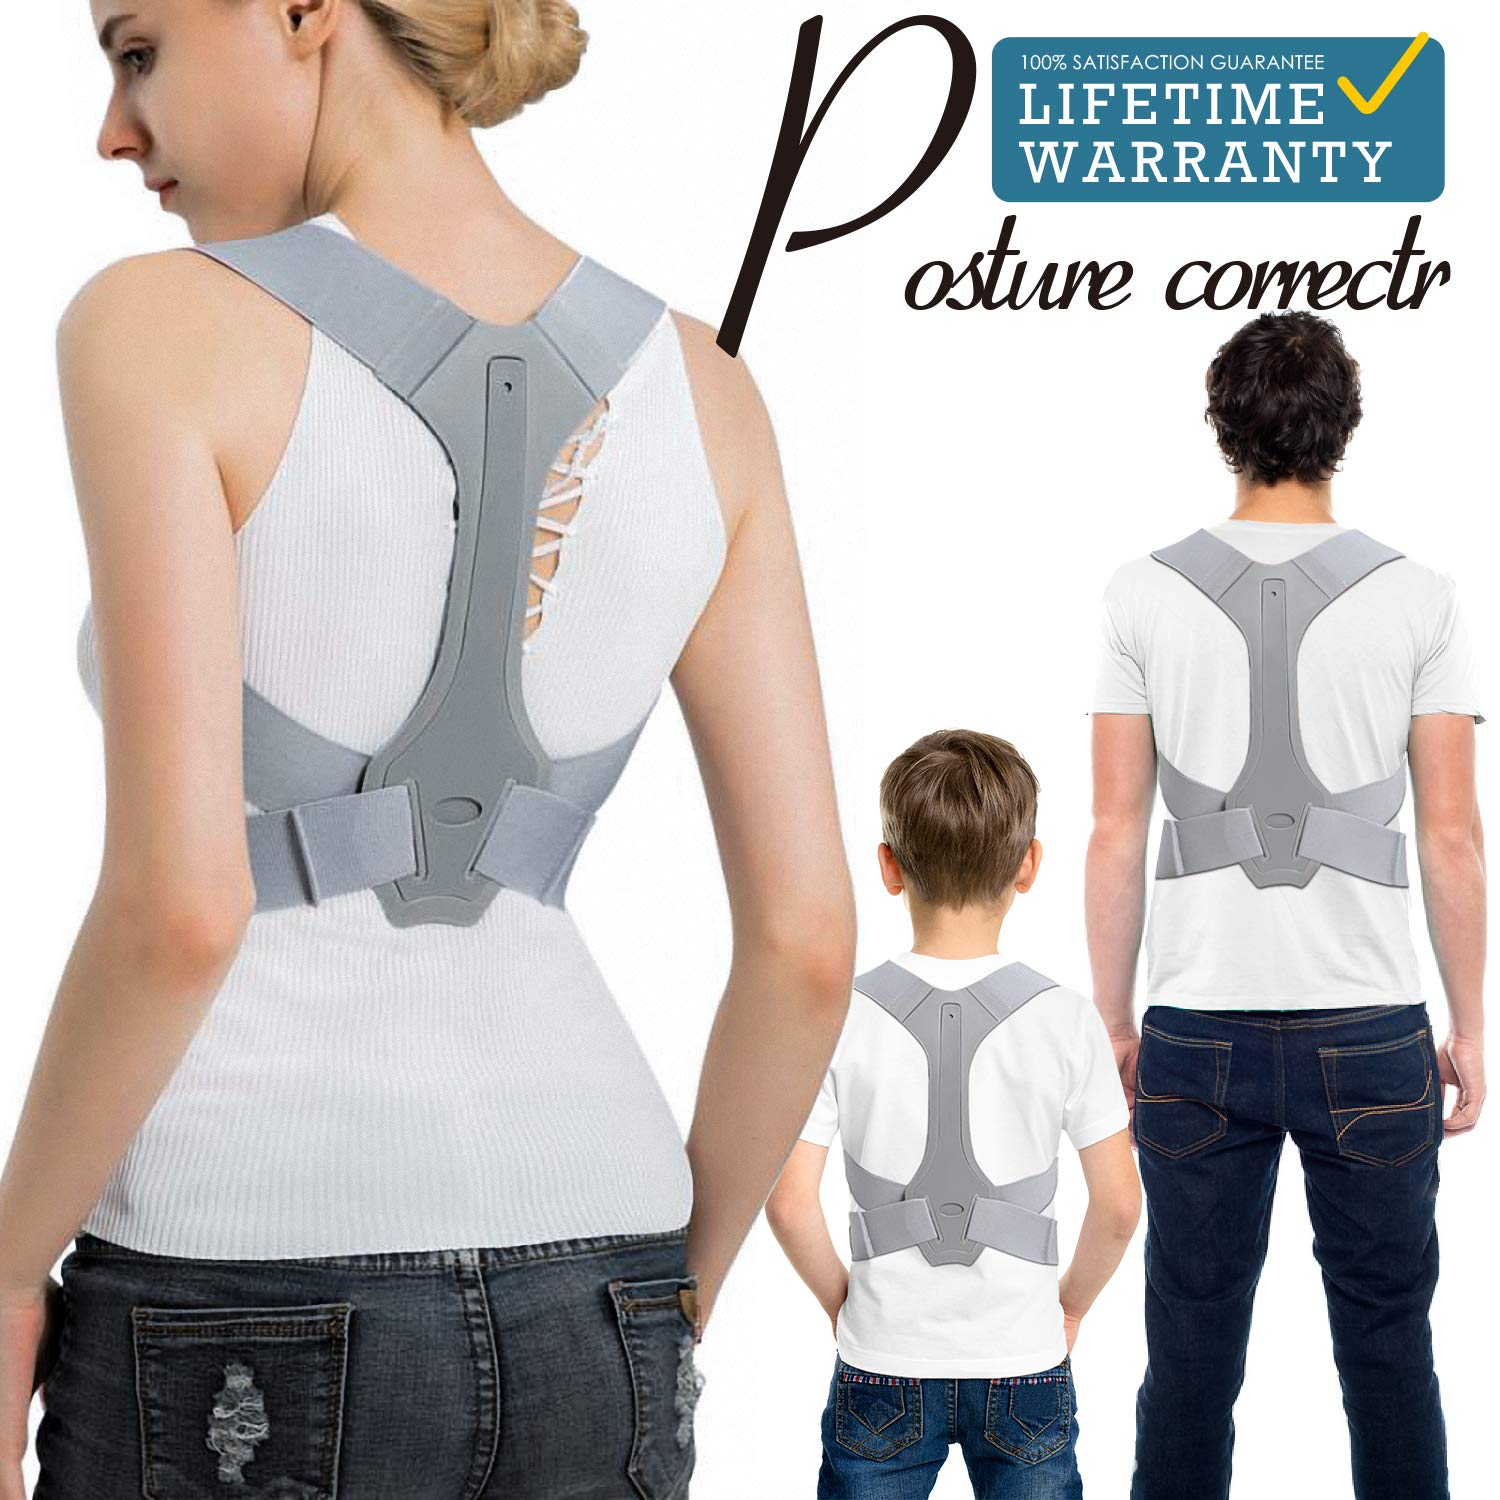 anzoee Posture Corrector for Men & Women - USA Designed Upper Back Brace for Clavicle Support & Providing Pain Relief from Neck, Back & Shoulder(Large)